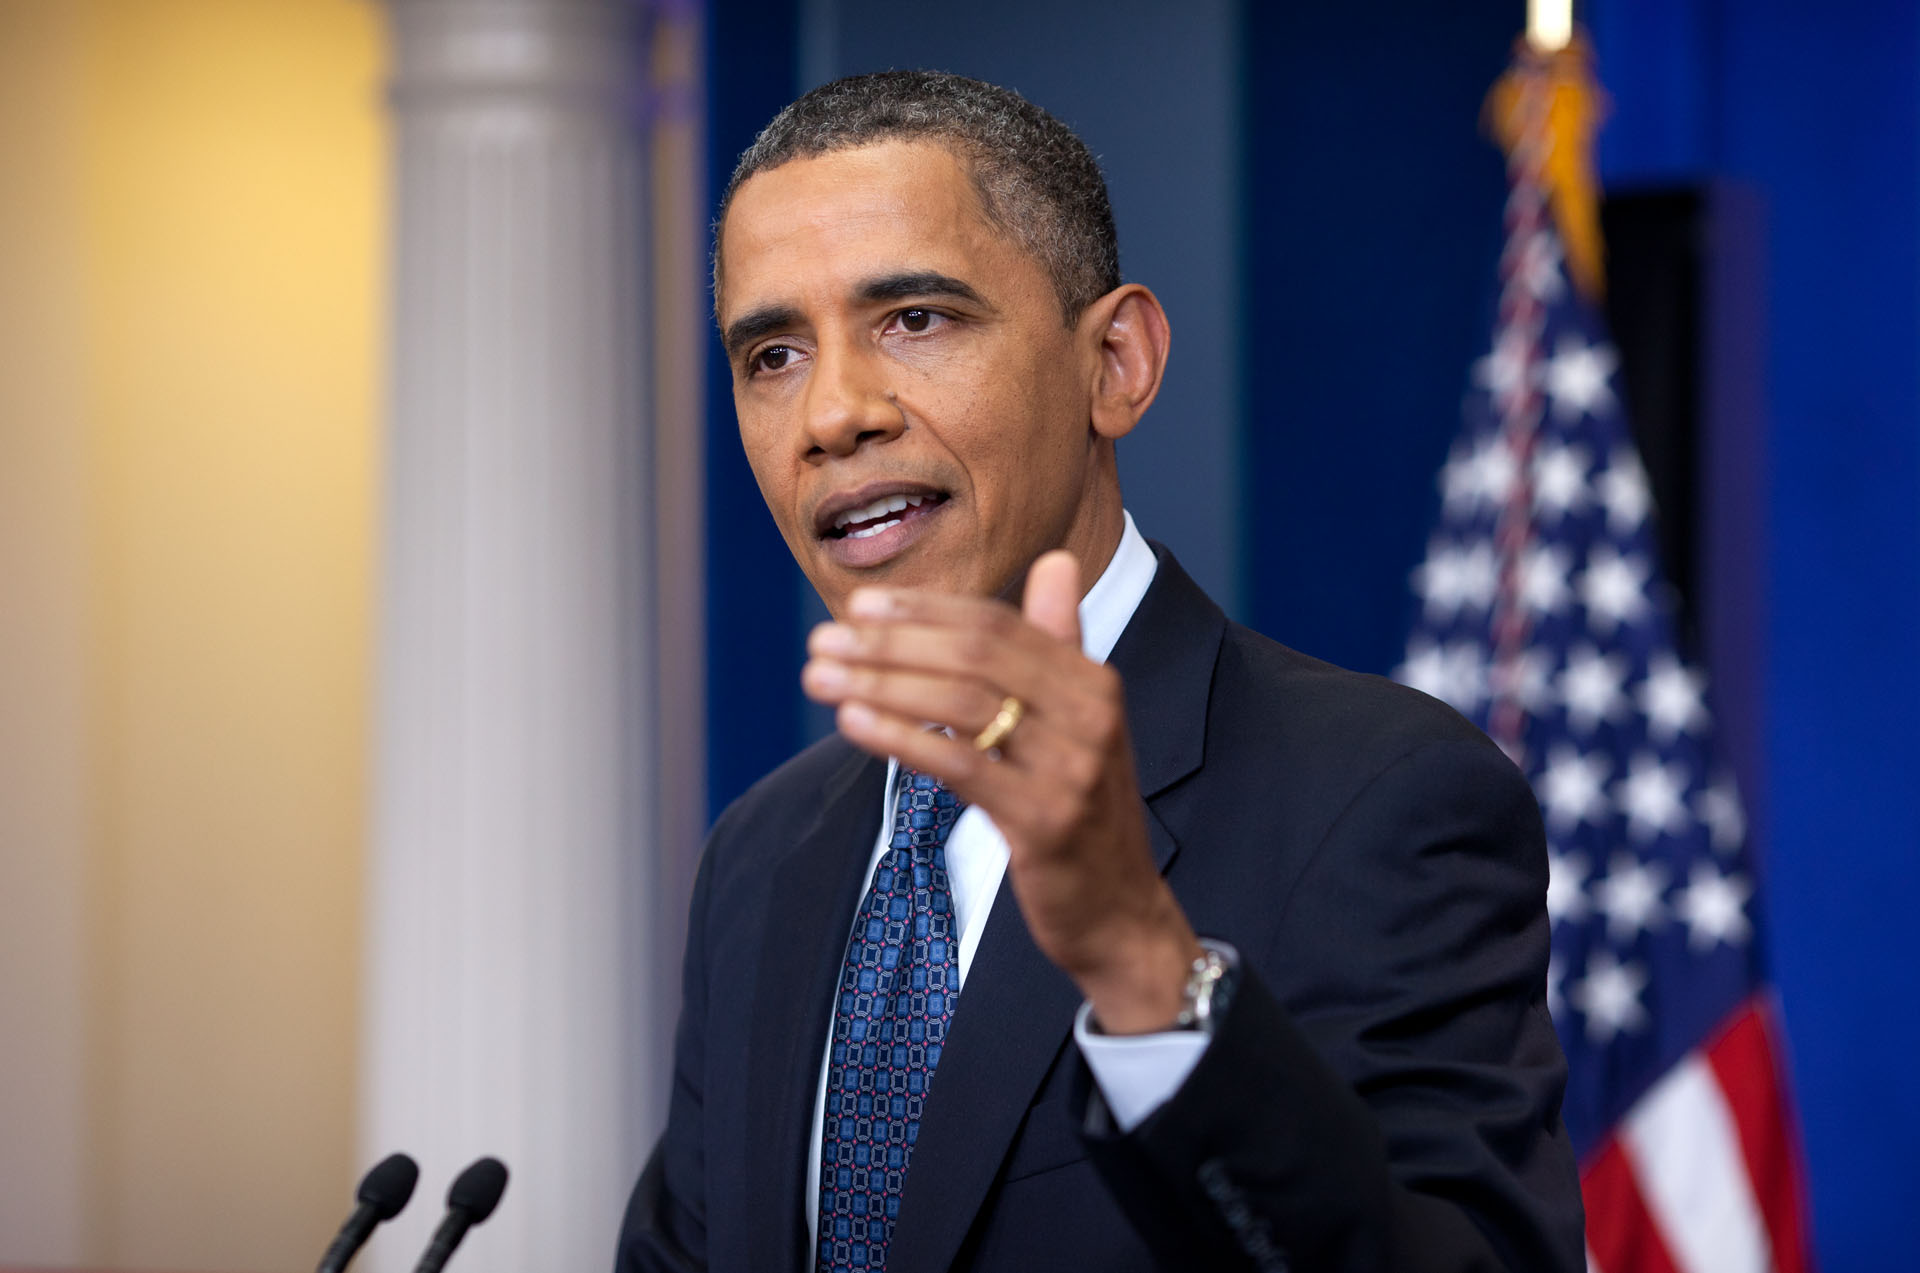 President Barack Obama makes a Statement to the Press